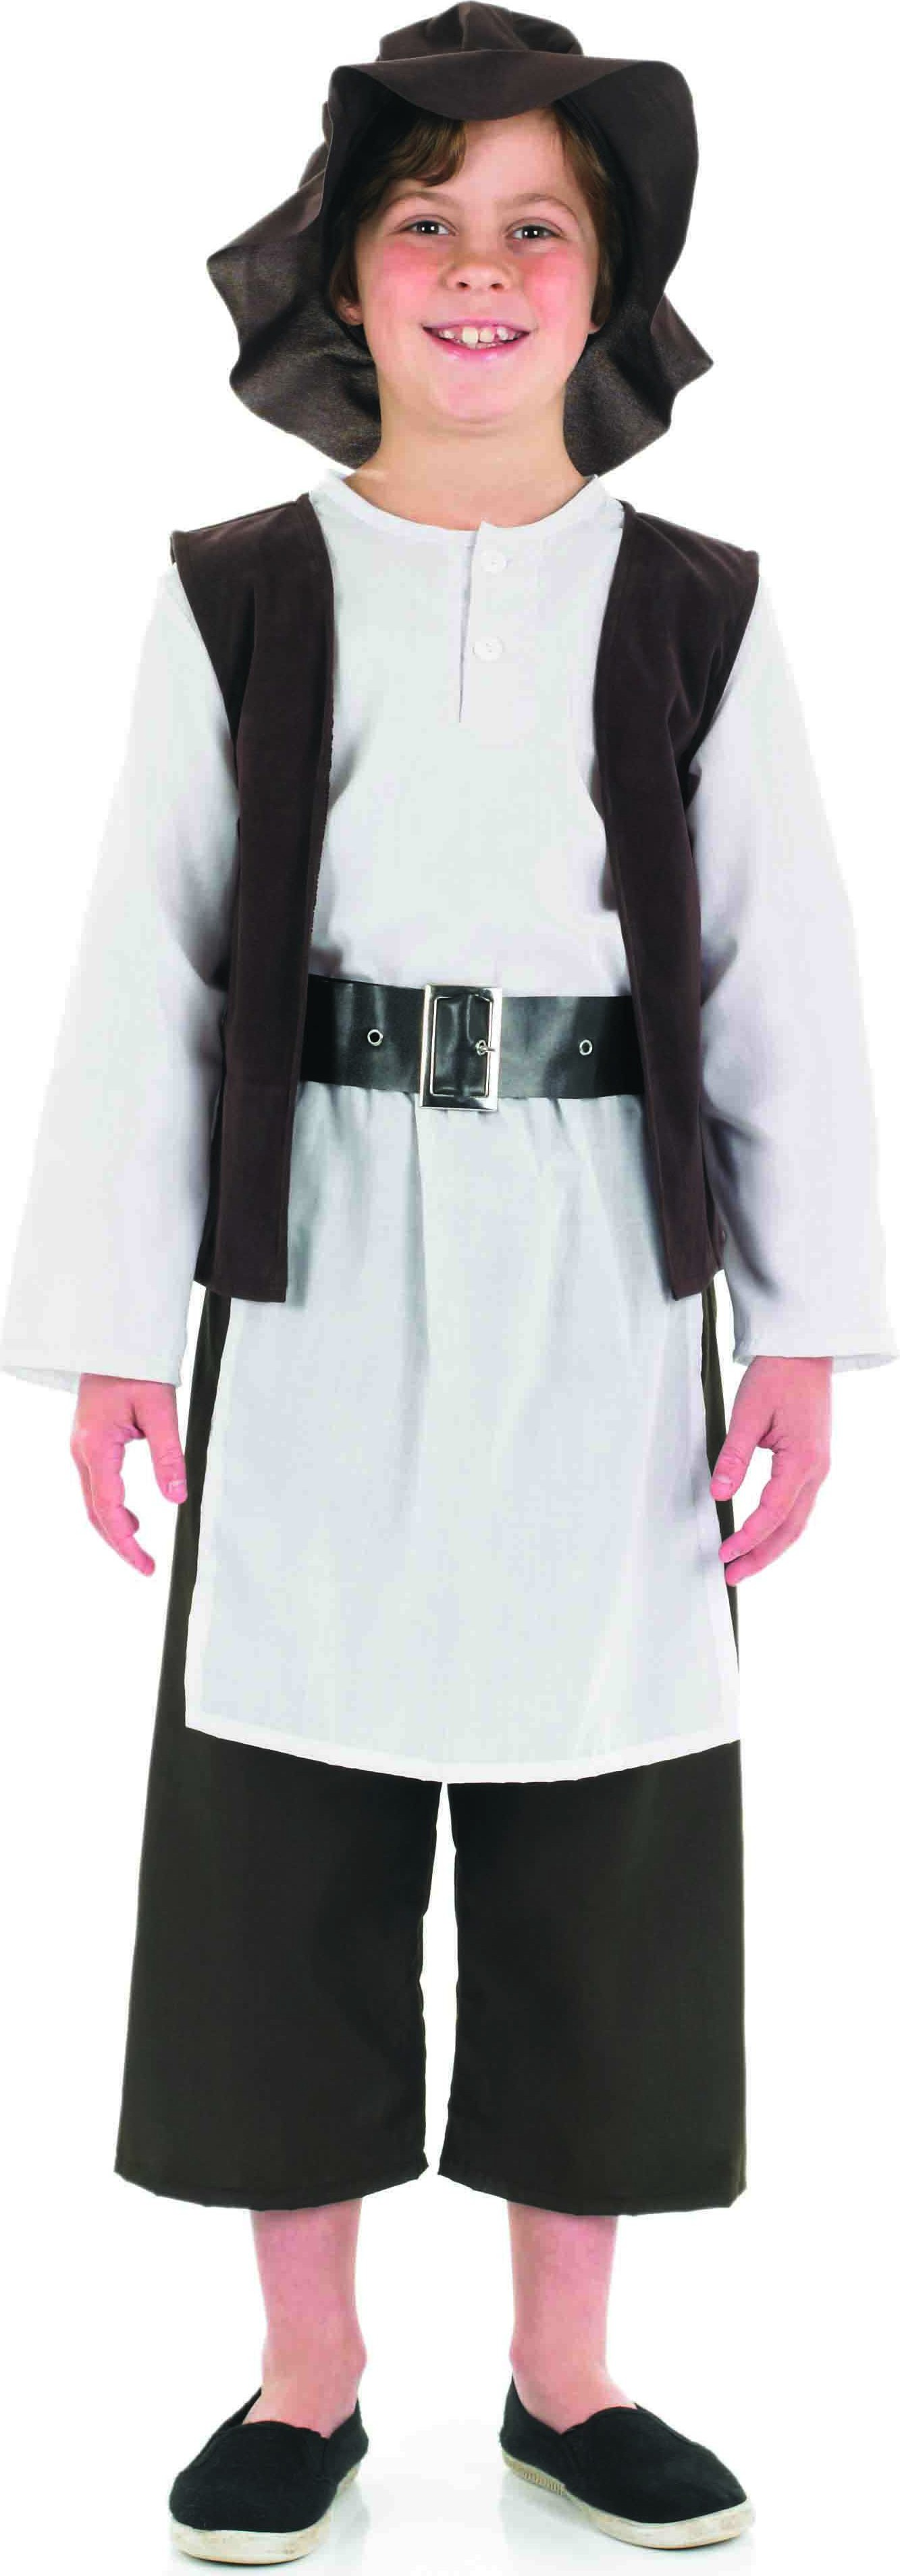 Boys Deluxe Tudor Boy Victorian Outfit - (White, Brown)